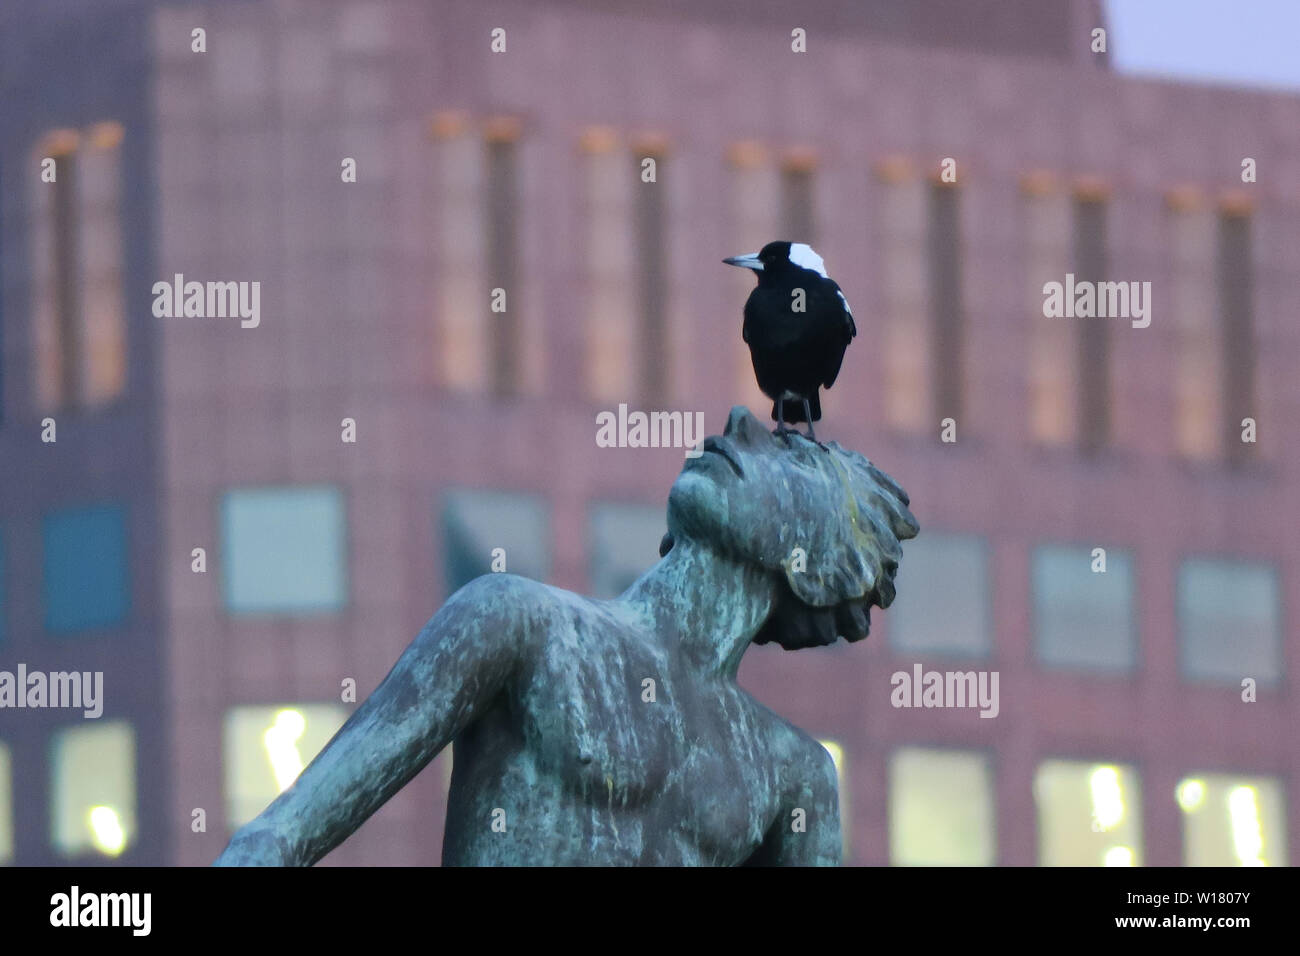 Birds of Melbourne. A magpie bird sits on the face of a statue in Melbourne. Stock Photo